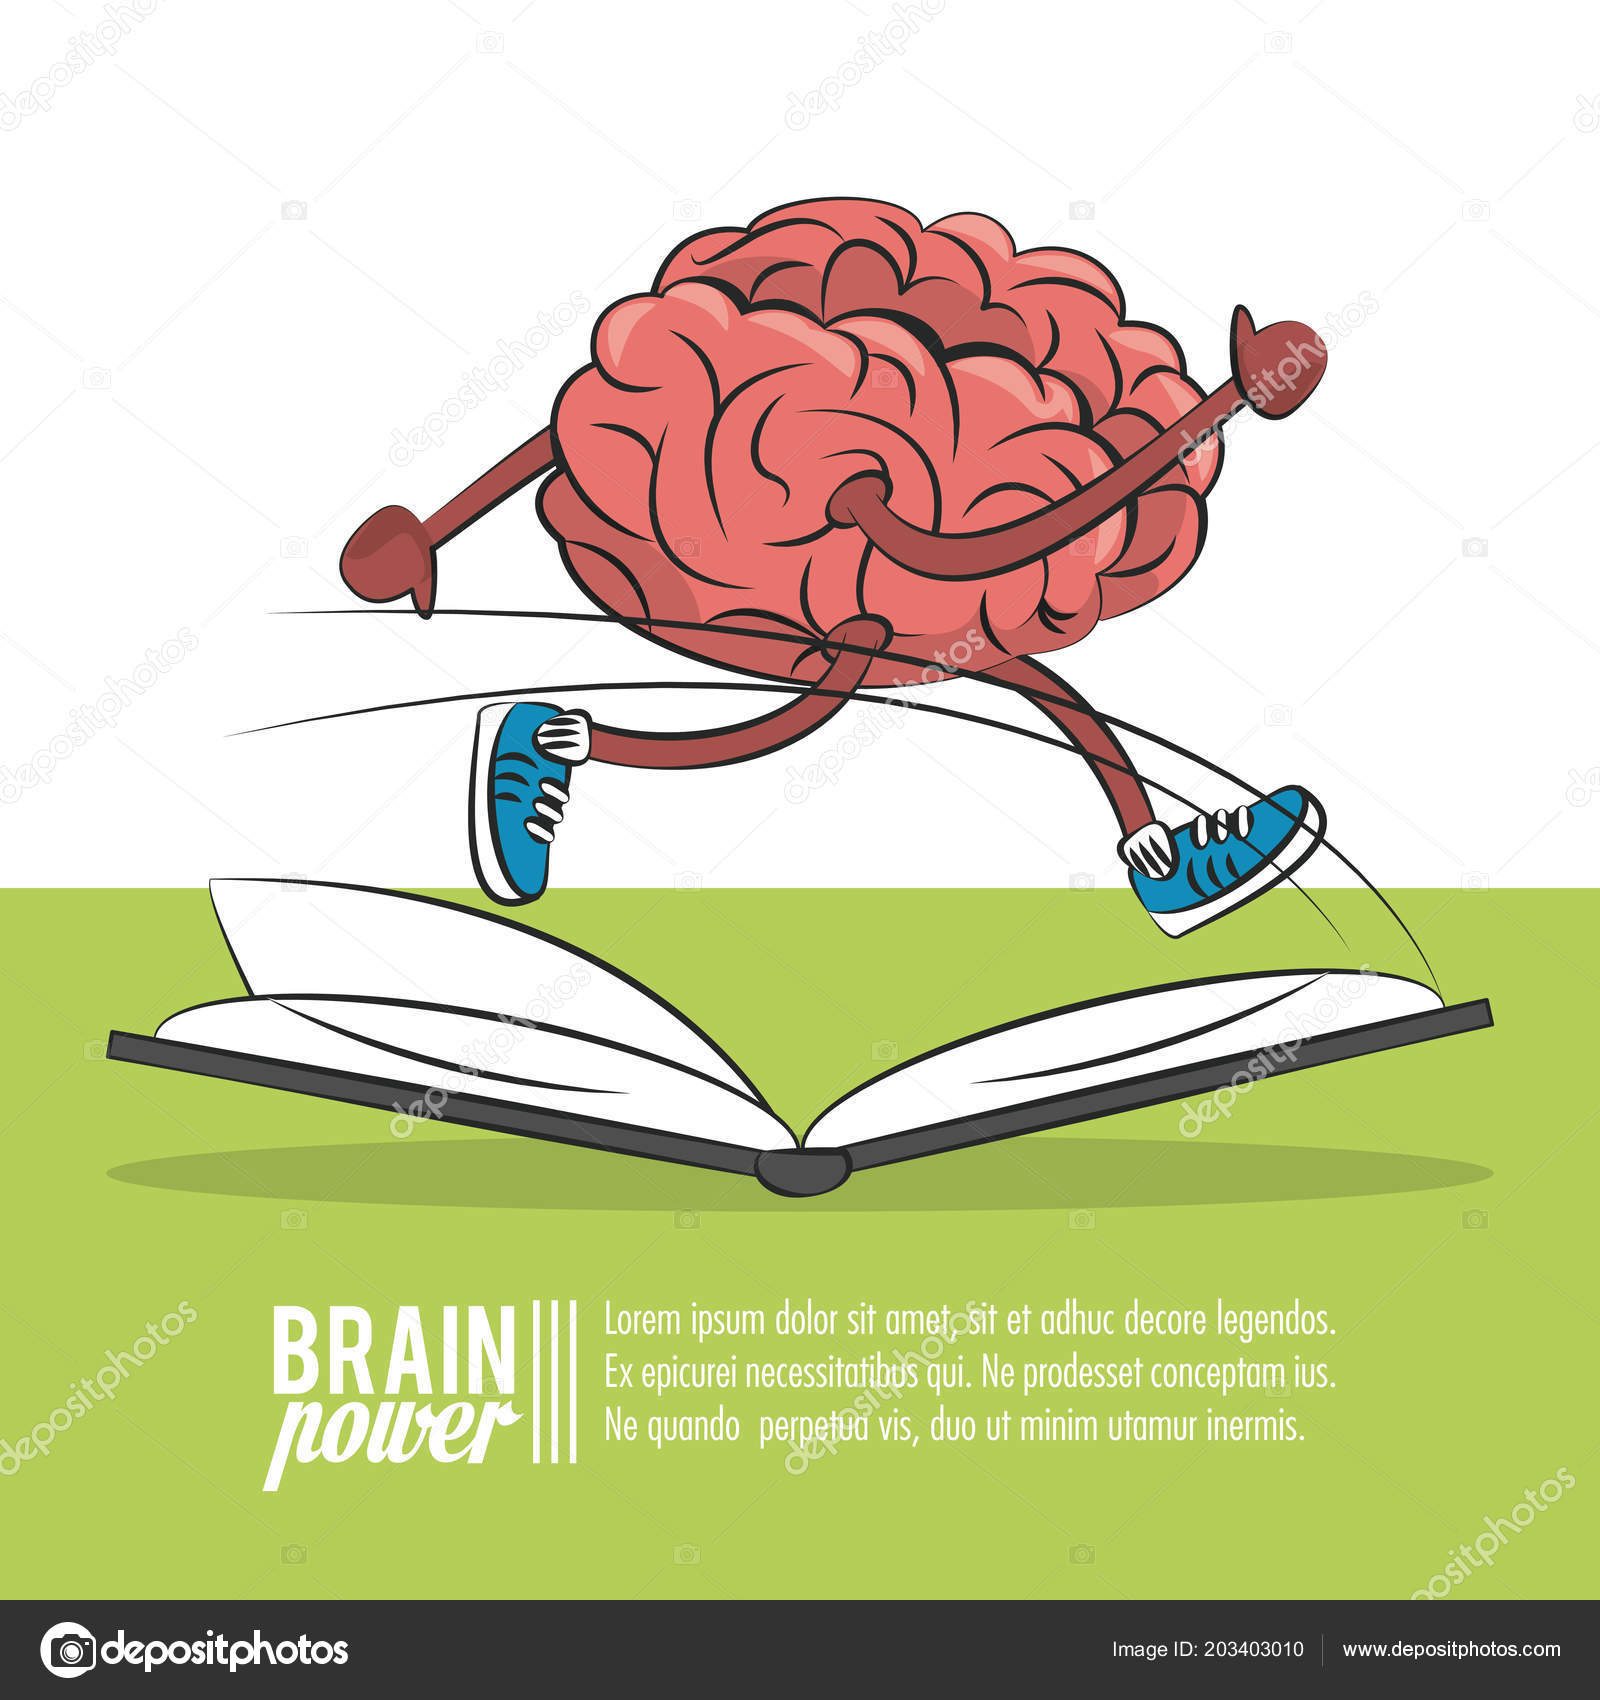 Brain power poster — Stock Vector © jemastock #203403010